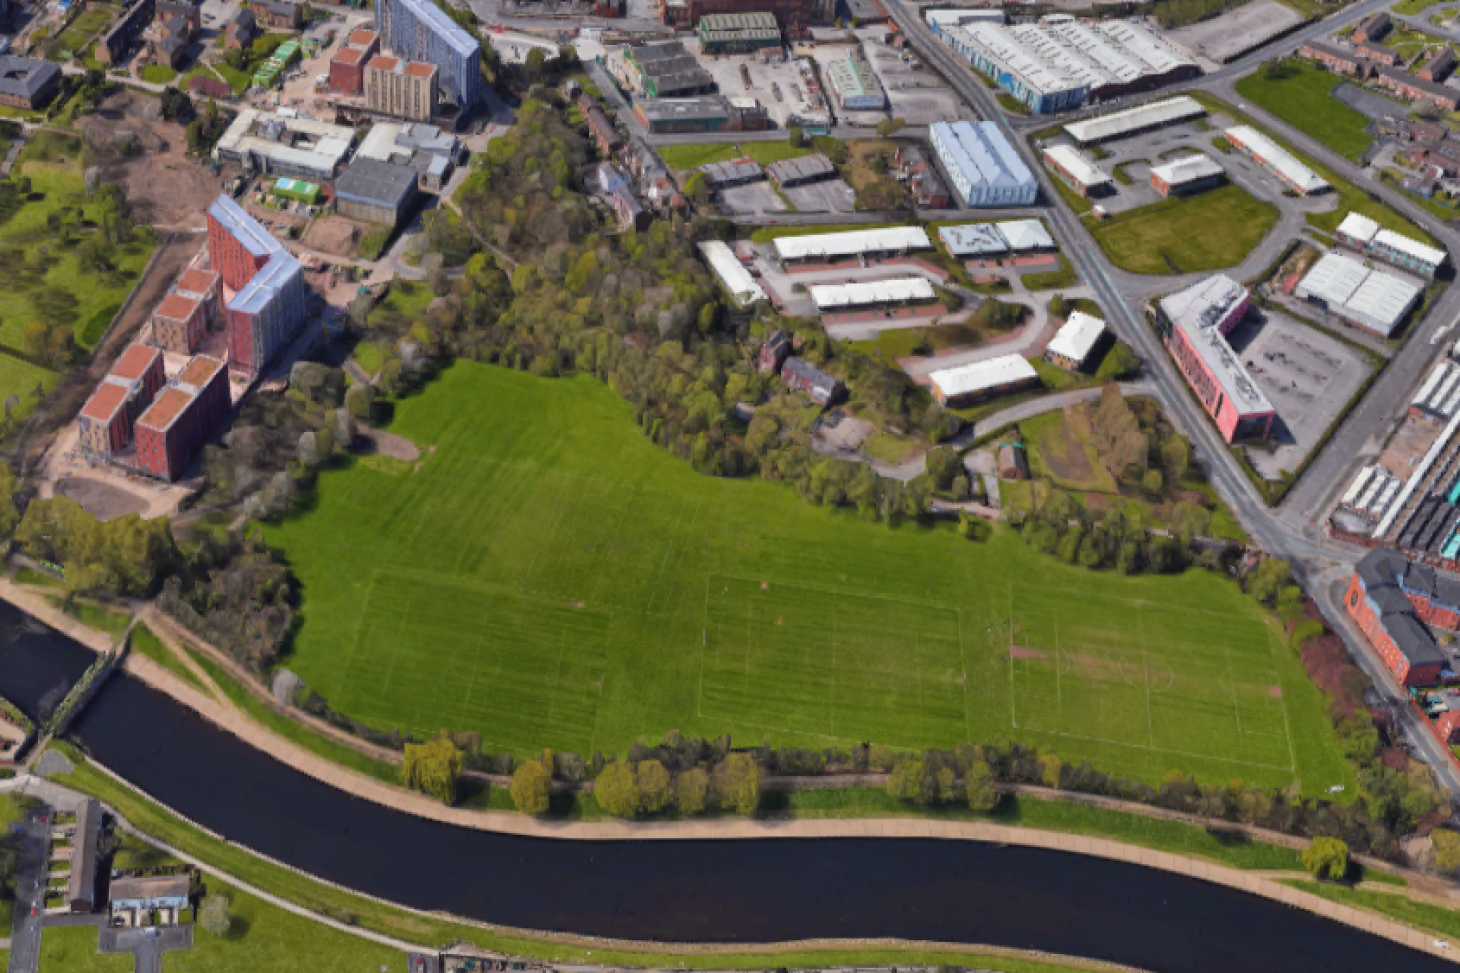 University of Salford Sports Centre 11 a side | Grass football pitch